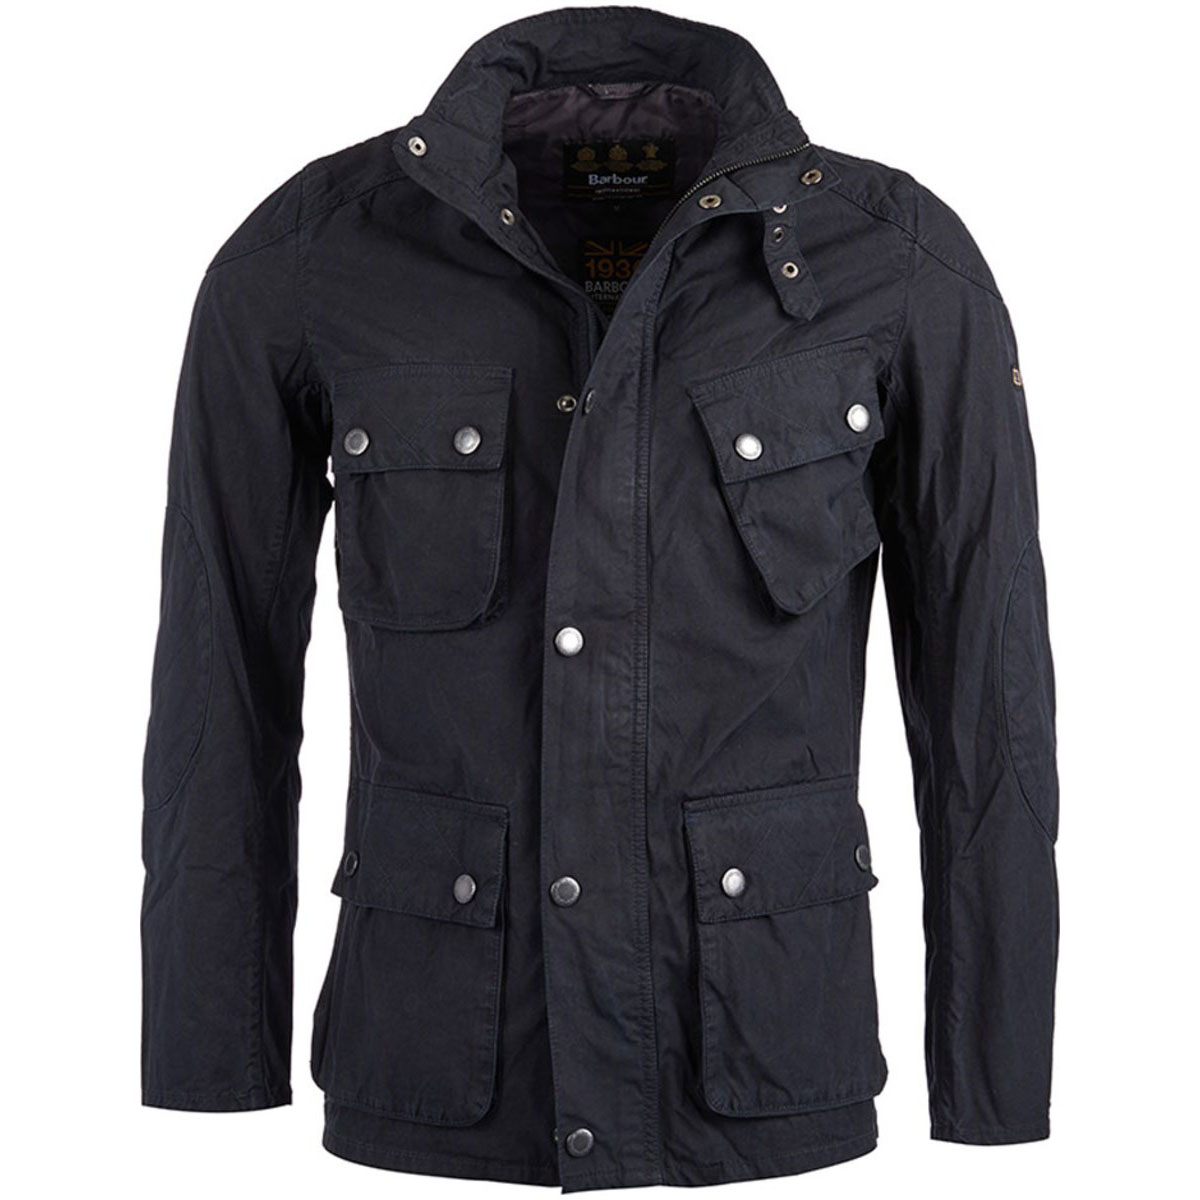 Barbour B.Intl Smokey Jacket Navy Barbour International: From the Ride to the Sun collection